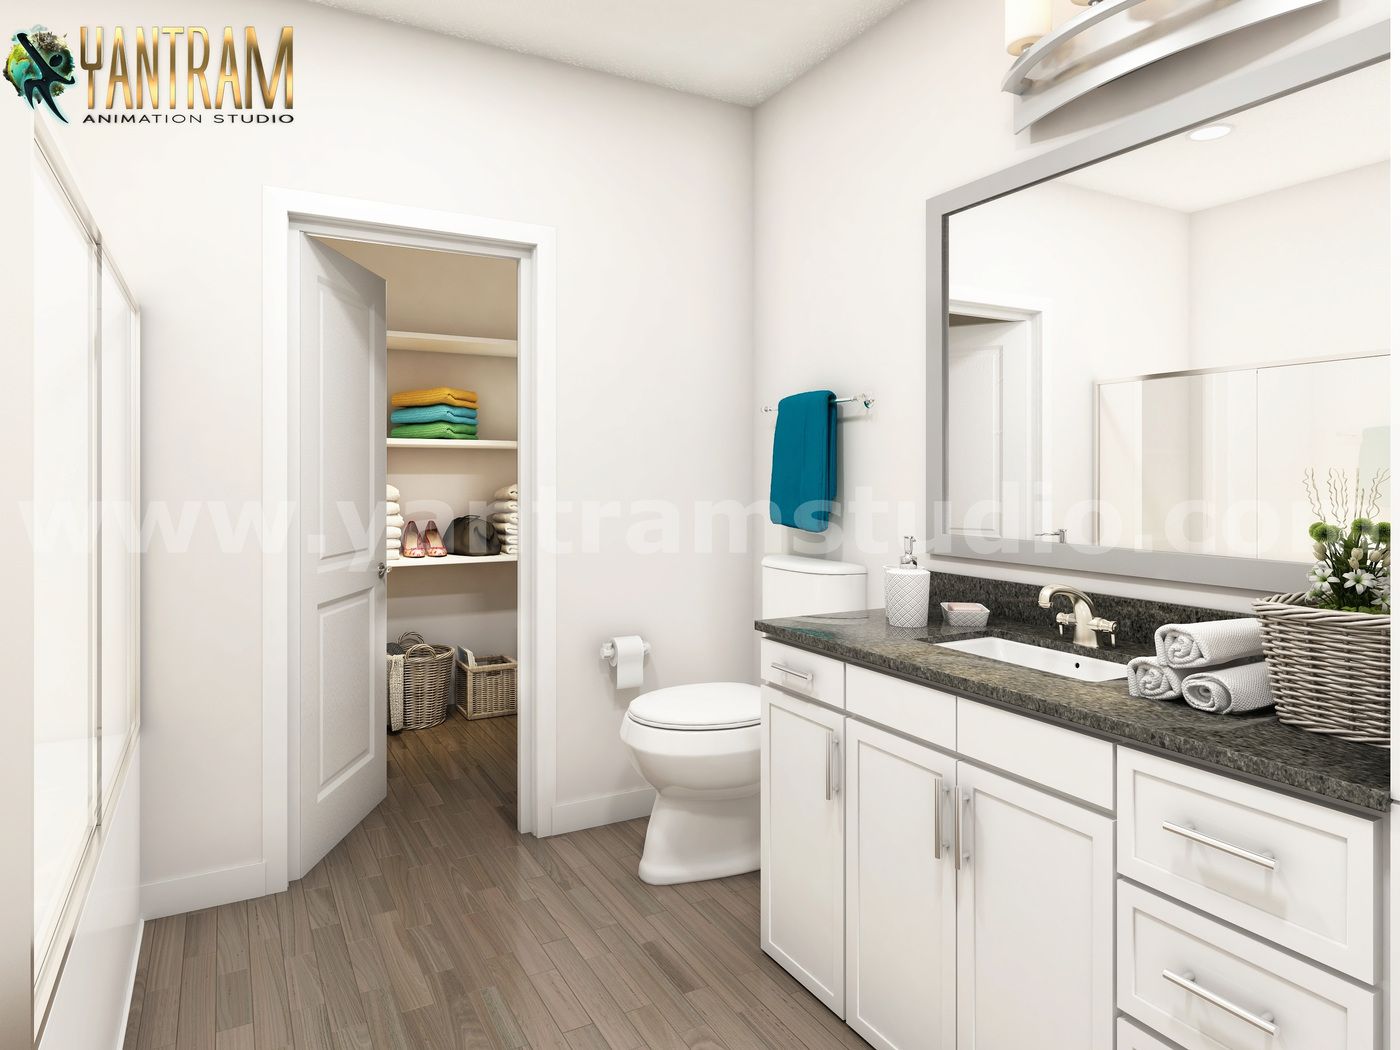 Yantram Studio - Latest Elegance Bathroom Architectural Design Home Plans by Architectural Planning Companies, Cape Town, South Africa